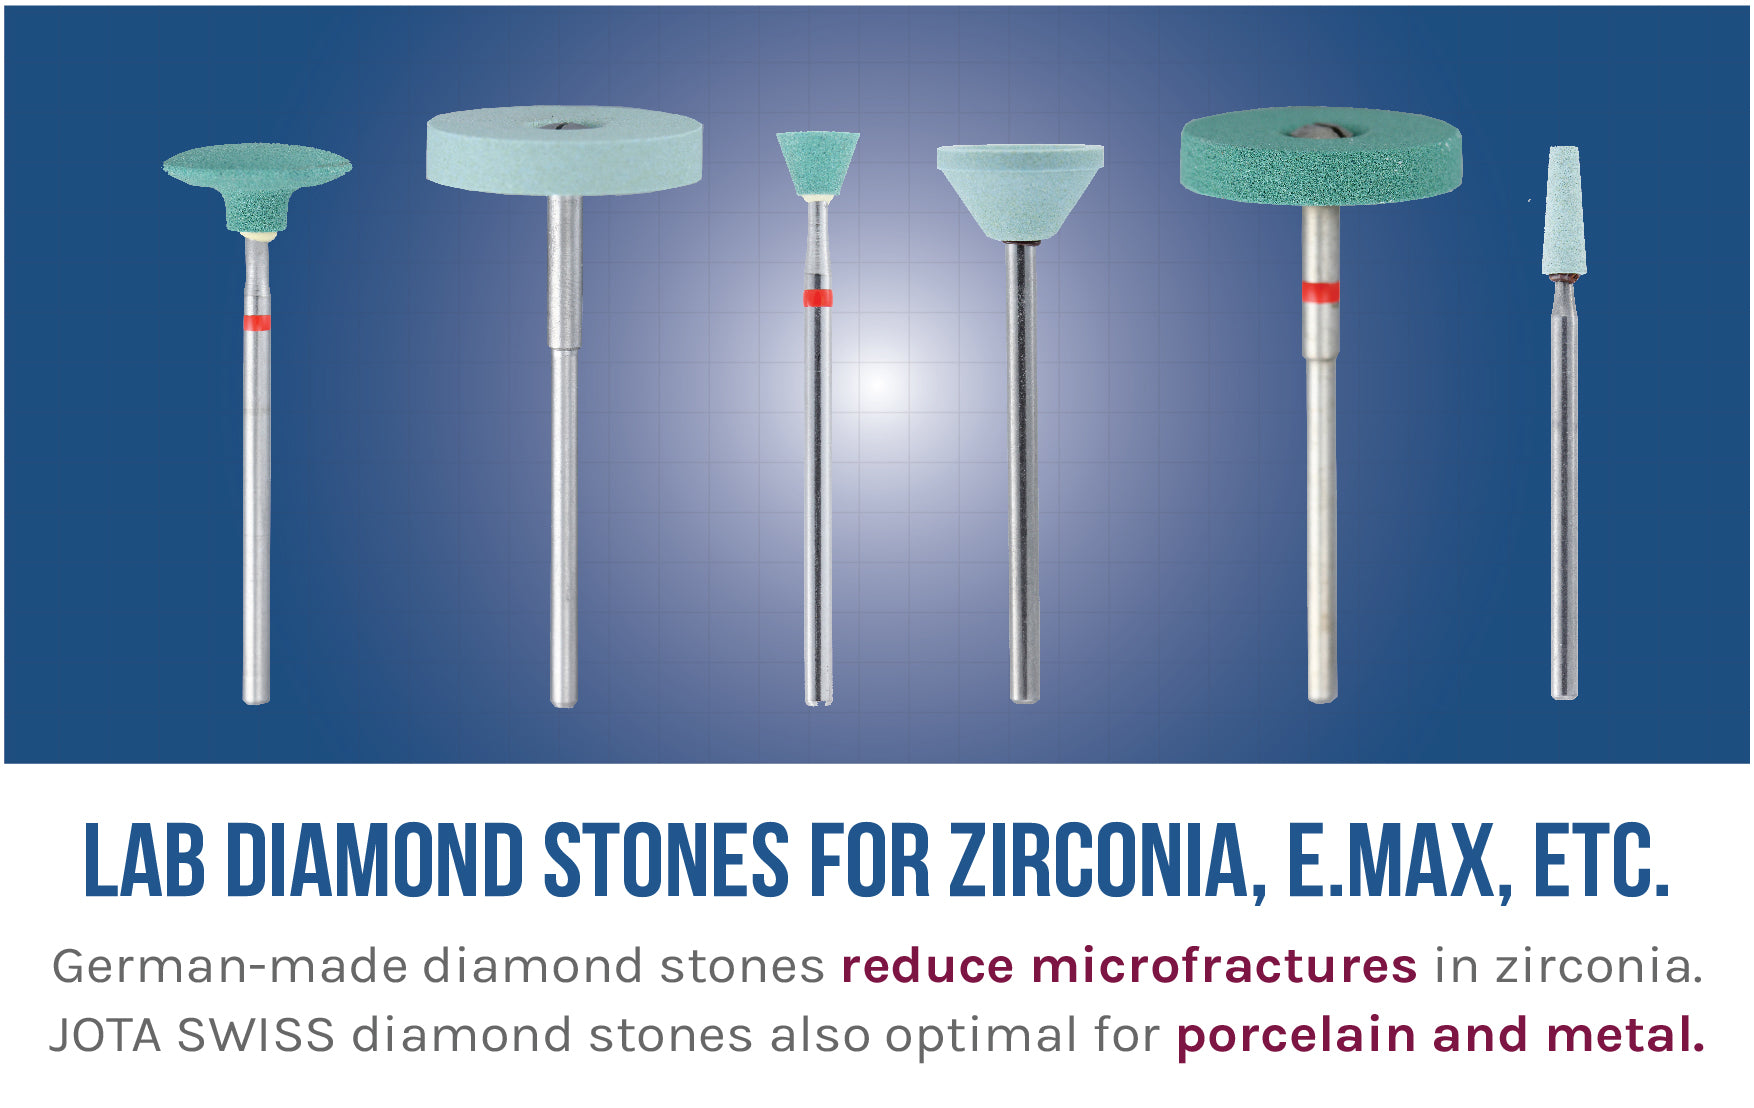 Lab Stones for Zirconia and E.Max